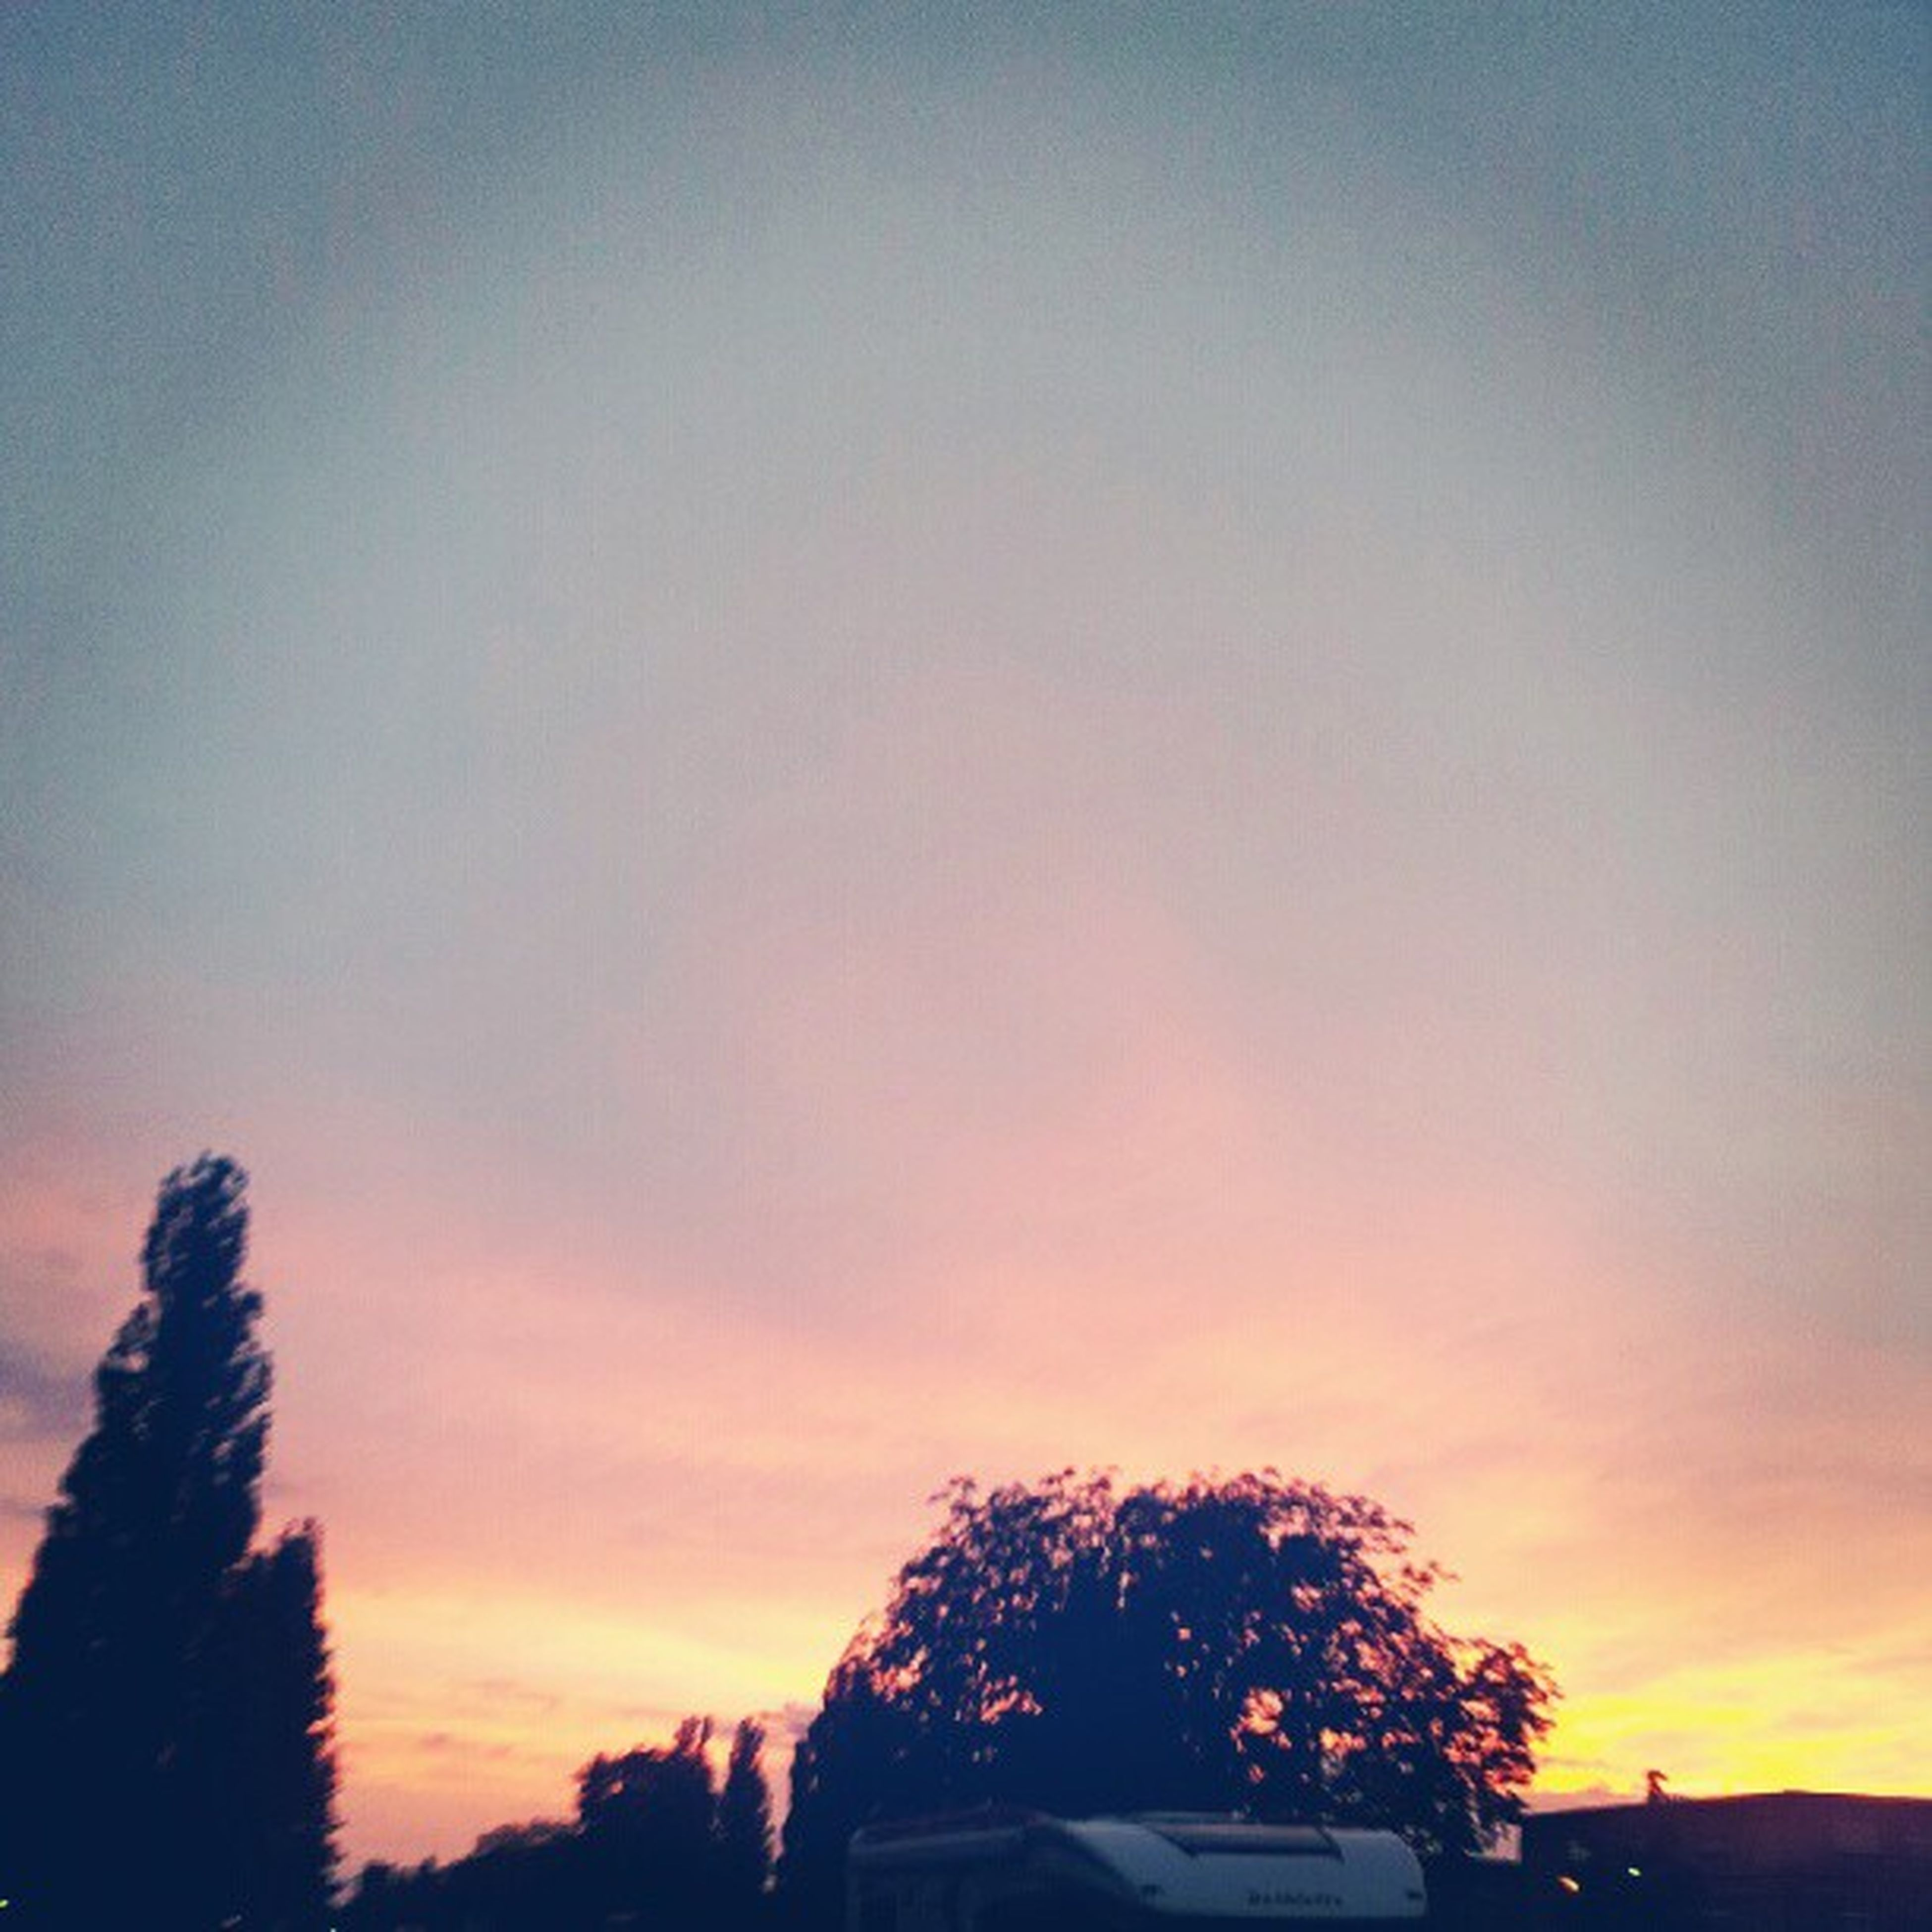 sunset, silhouette, tree, sky, orange color, low angle view, beauty in nature, scenics, tranquility, nature, tranquil scene, built structure, building exterior, cloud - sky, idyllic, dusk, architecture, growth, outdoors, high section